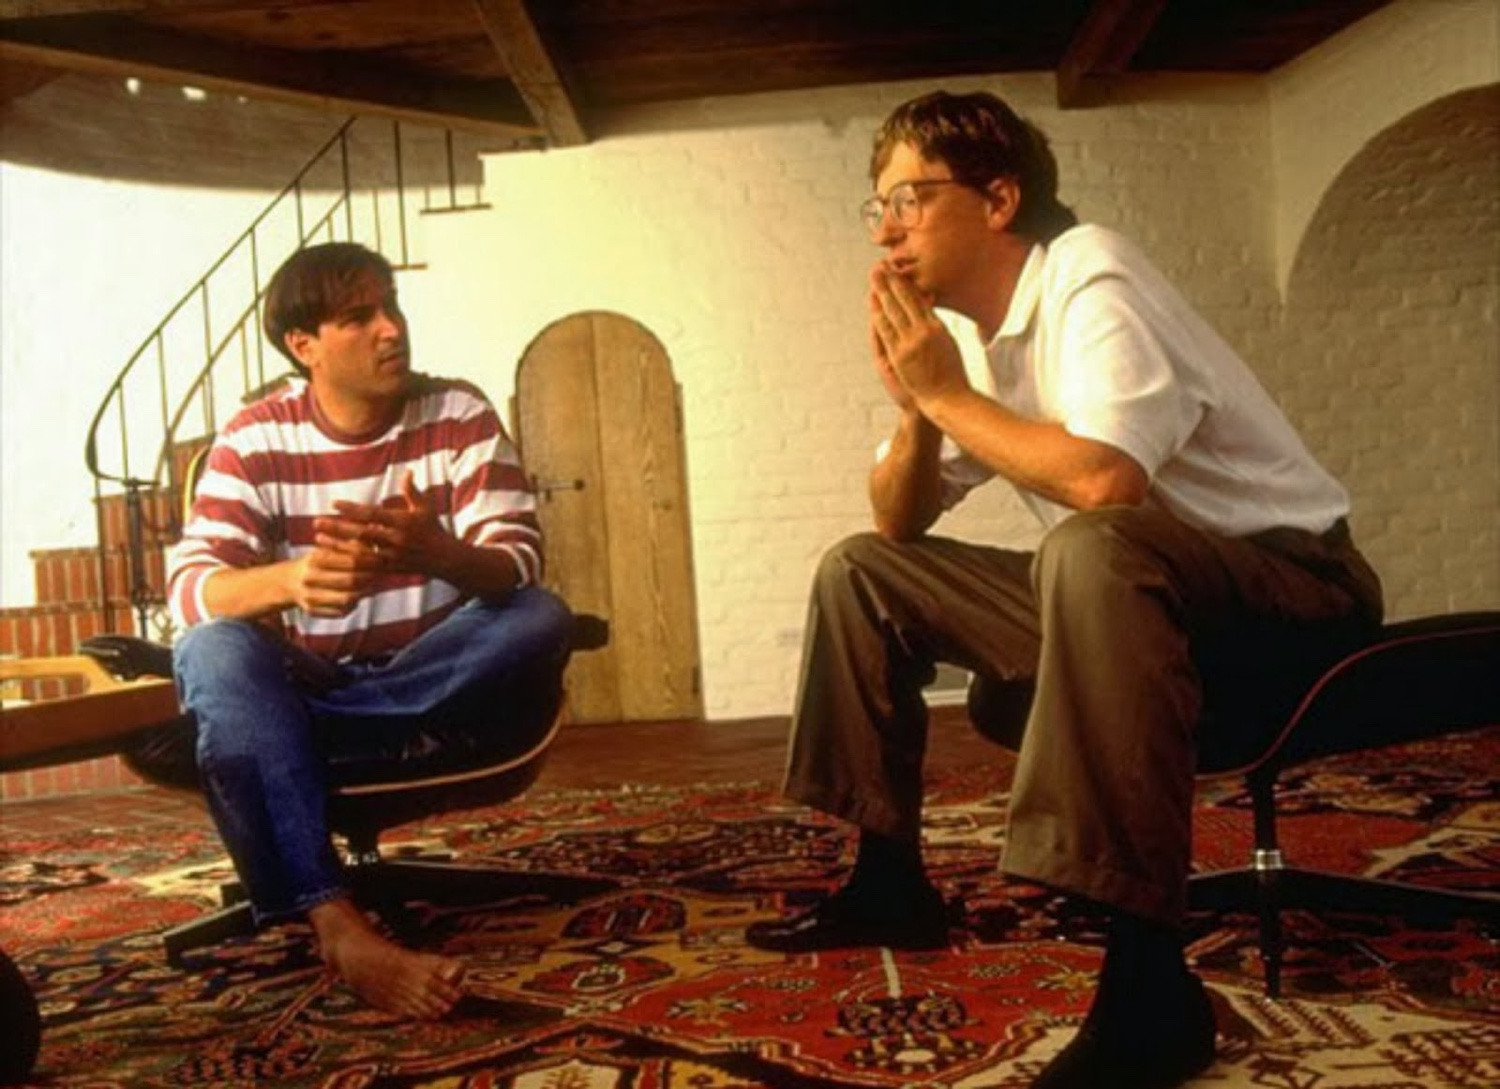 Steve Jobs and Bill Gates. Image © 2016 Eames Office, LLC.